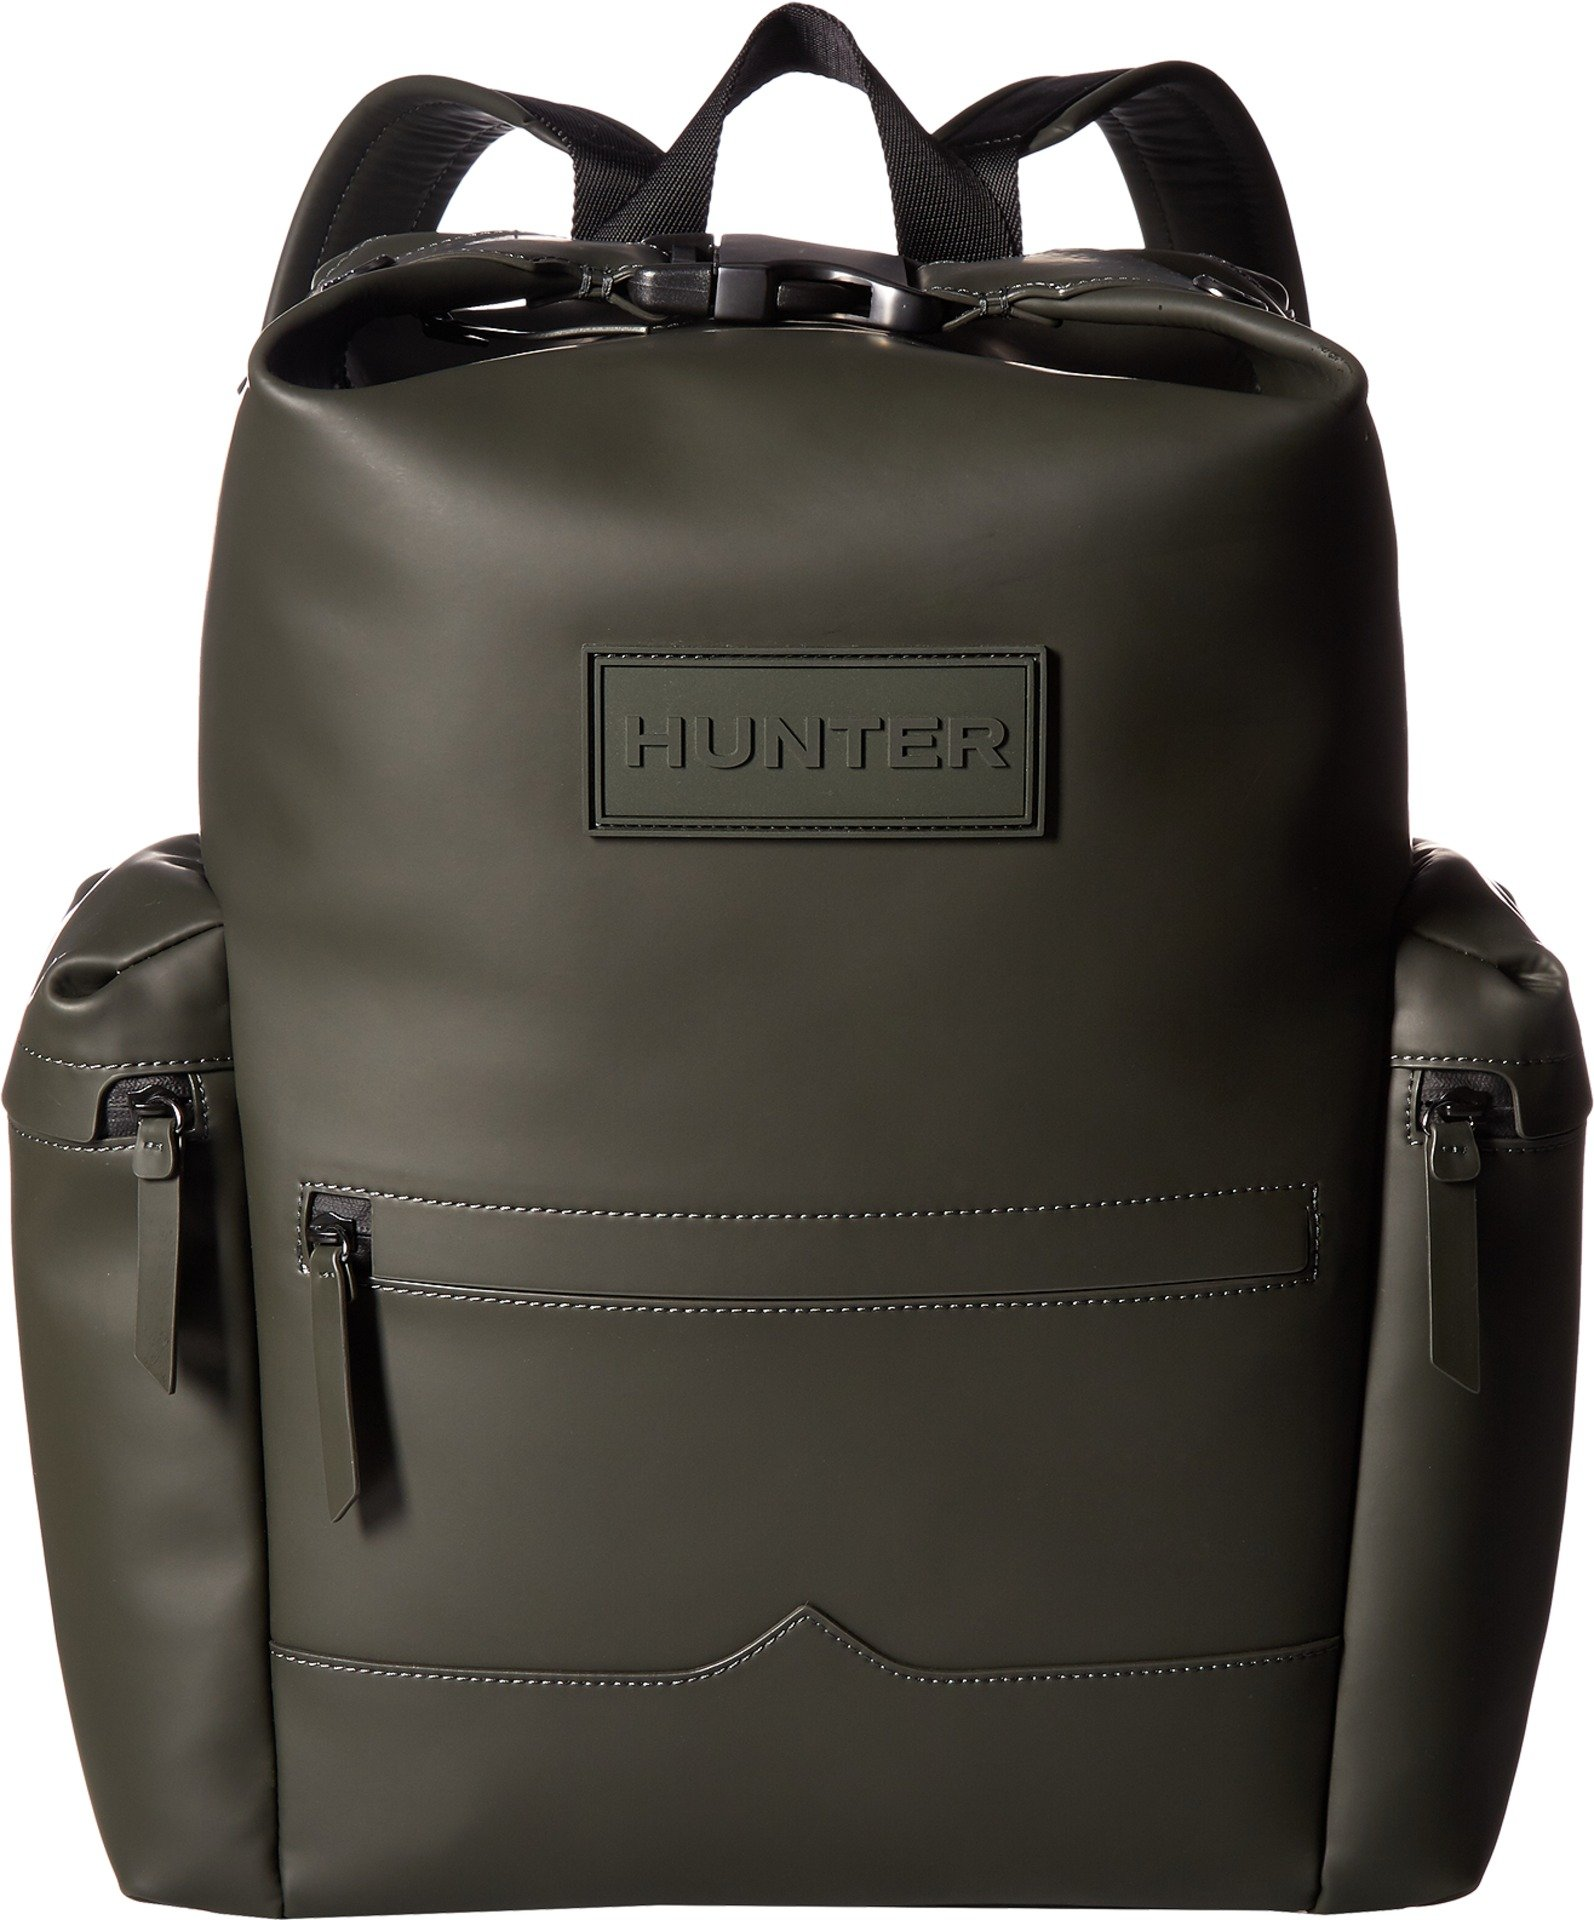 Hunter Boots Men's Original Rubberised Leather Backpack, Dark Olive, One Size by Hunters